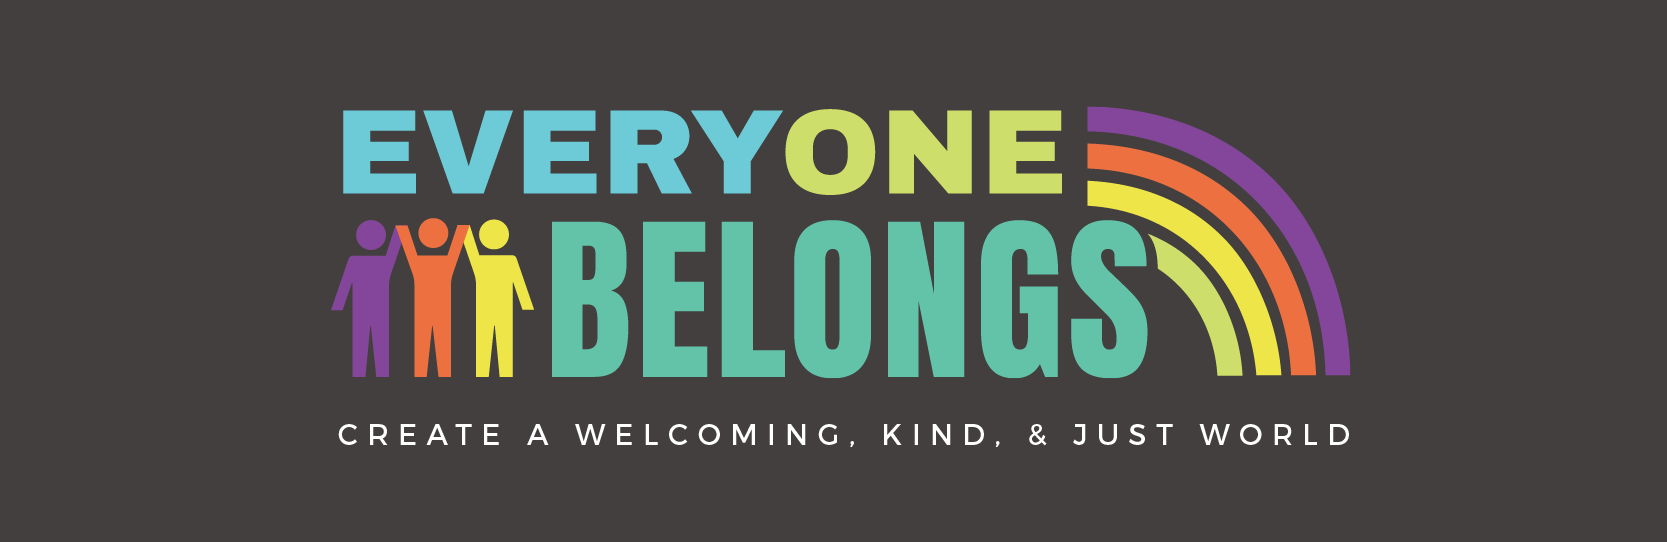 Everyone Belongs landing page header image